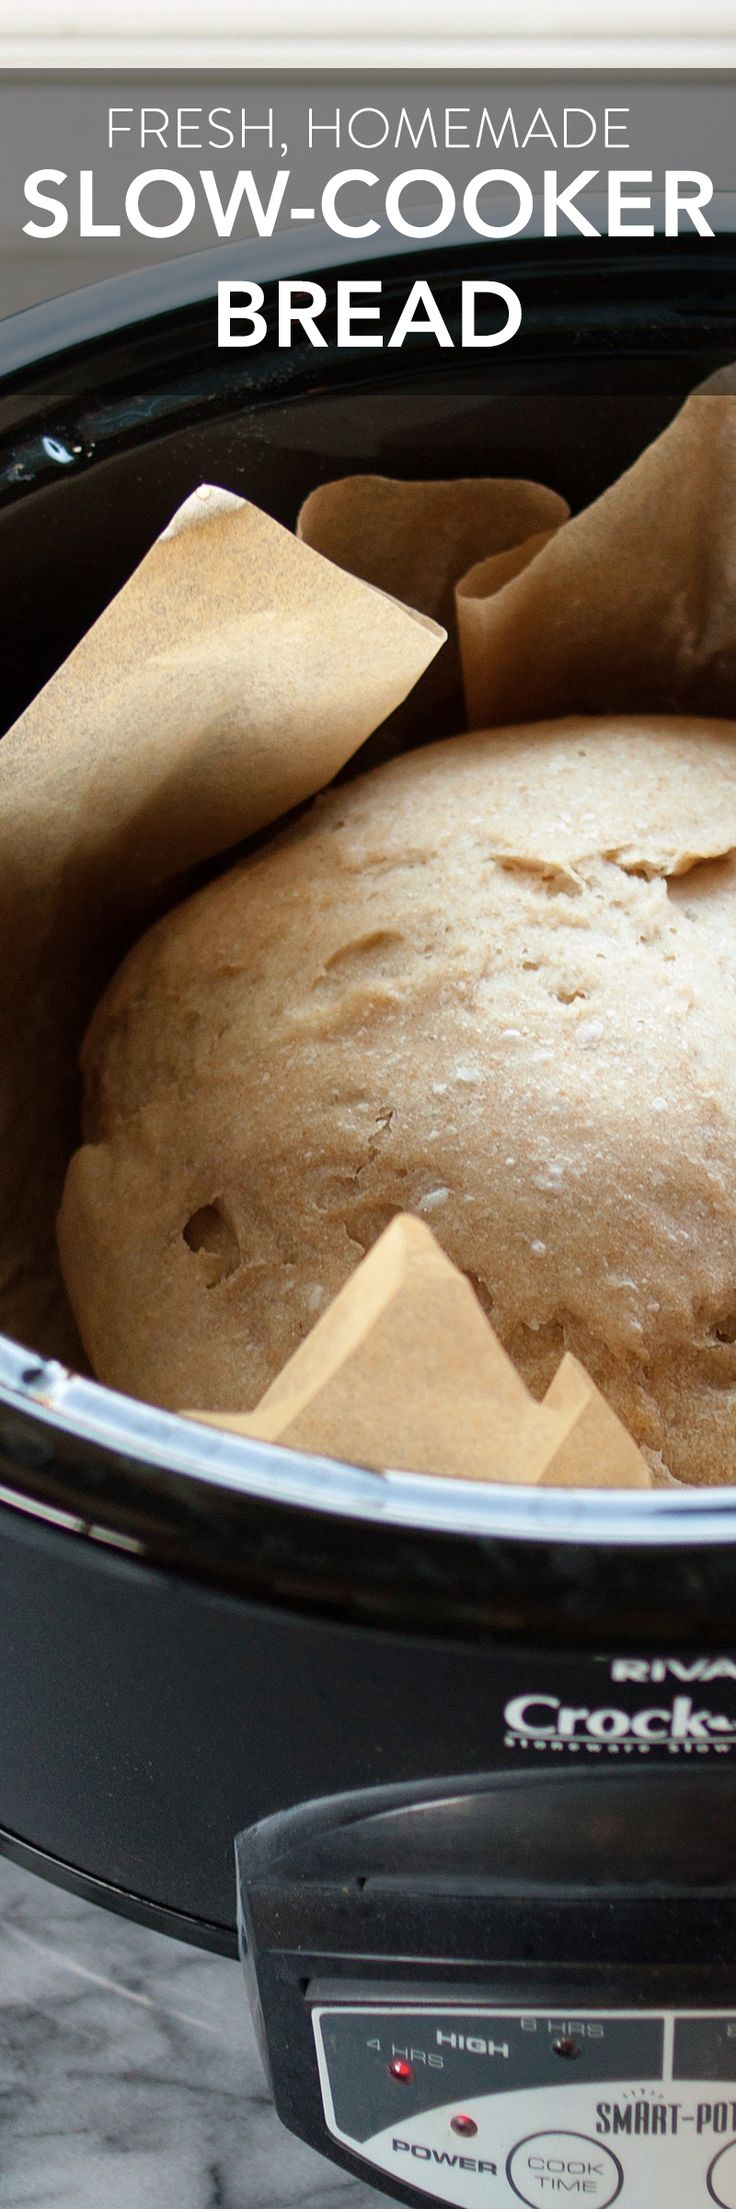 Fresh, homemade from scratch, slow cooker bread. Did you know there were recipes for baking bread in crock pots? This is such a neat tip and a great trick for keeping the kitchen cool when it's hot! (Cool Desserts Baking)